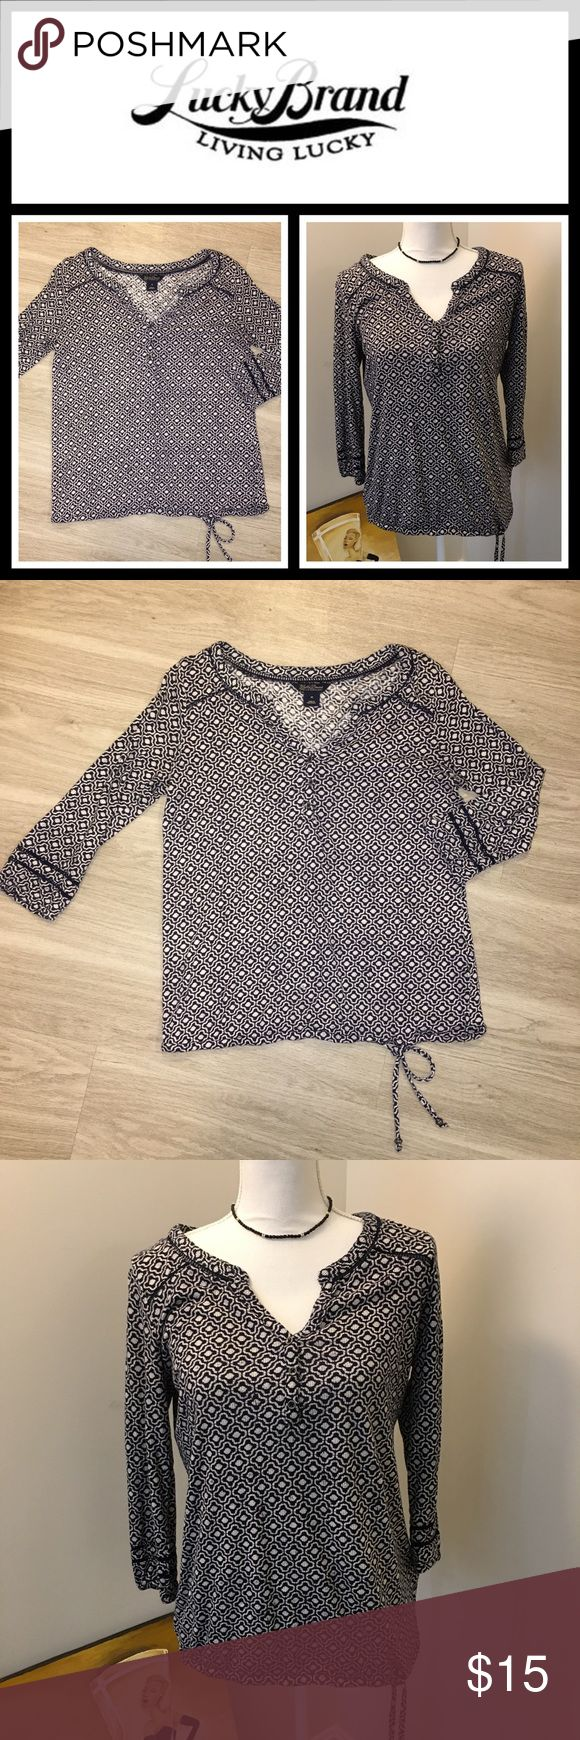 Lucky Brand Boho top 🍀 Excellent condition has work been warned about three times super soft and comfortable elastic waist and armbands size is medium cotton modal blend 🍀 Lucky Brand Tops